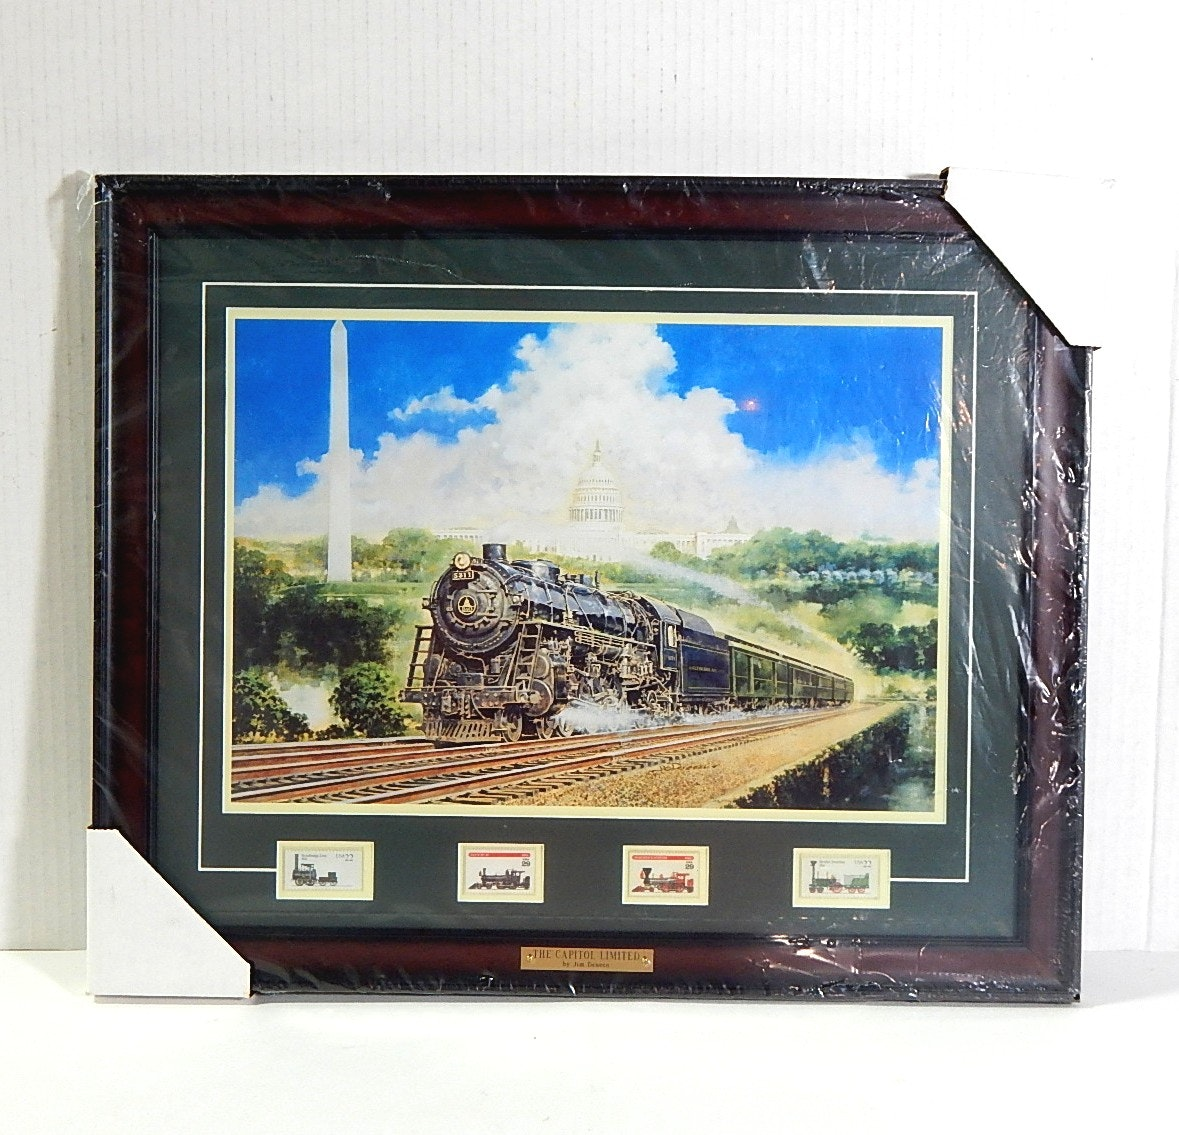 "Framed Railroad Stamps and Print ""The Capitol Limited"" by Jim Deneen"